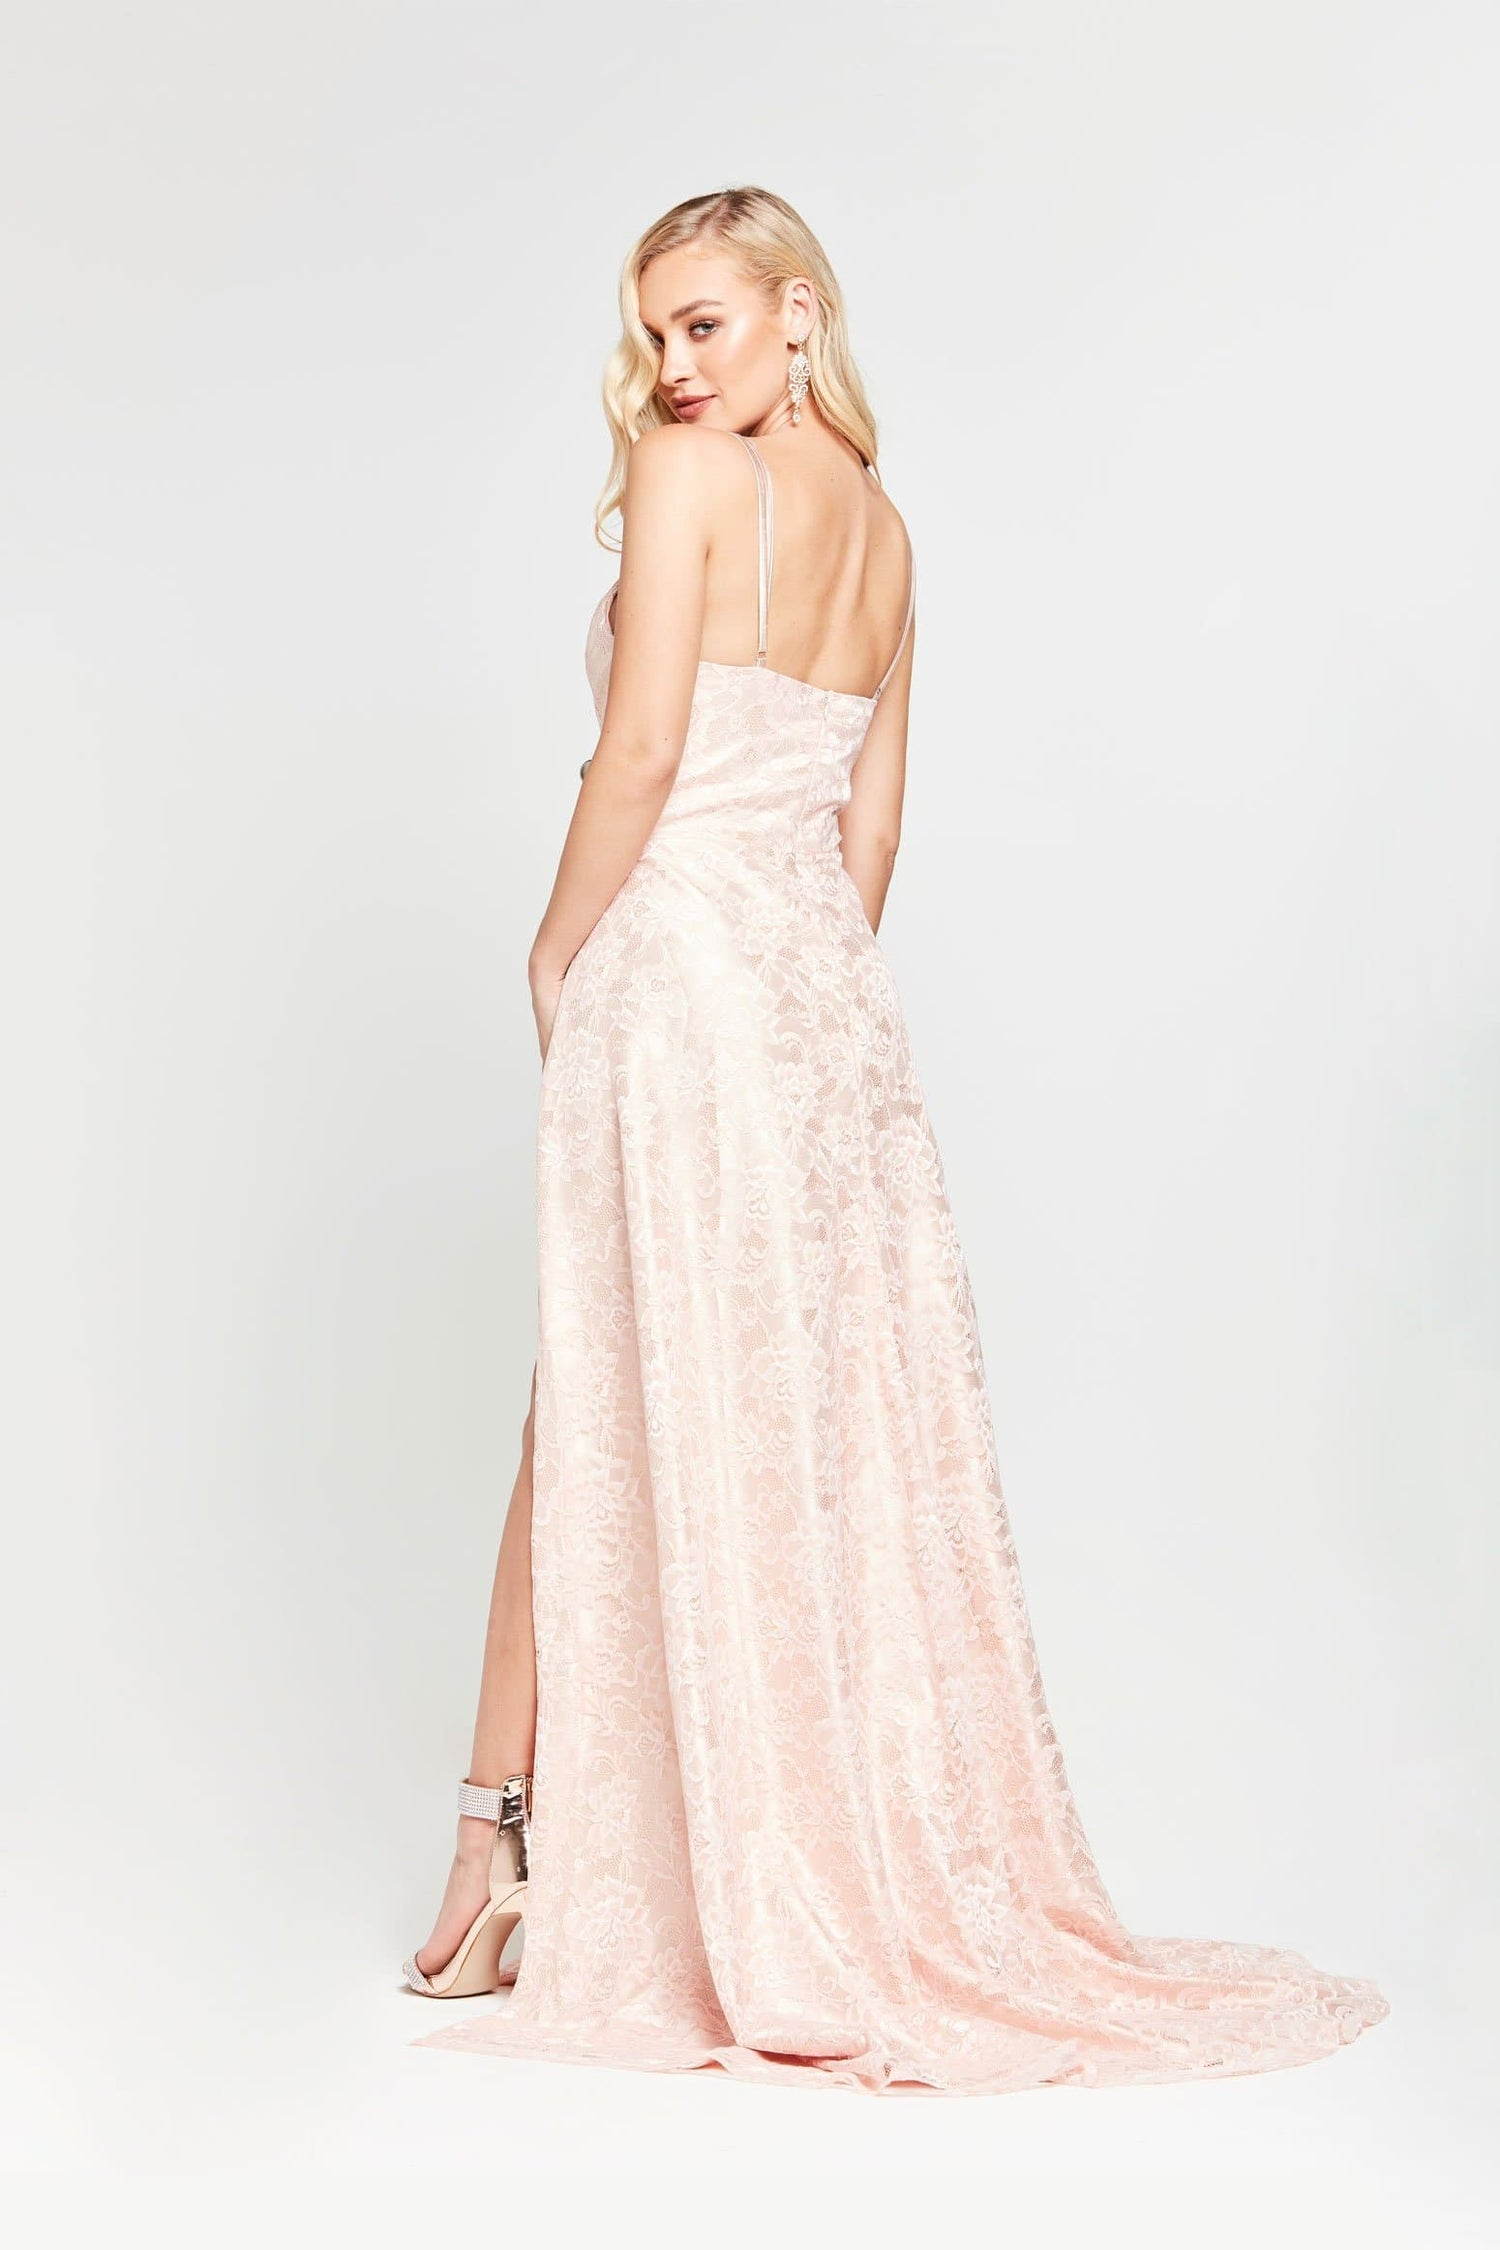 A&N Sofia - Blush Lace Formal Gown with V Neckline and Side Slits